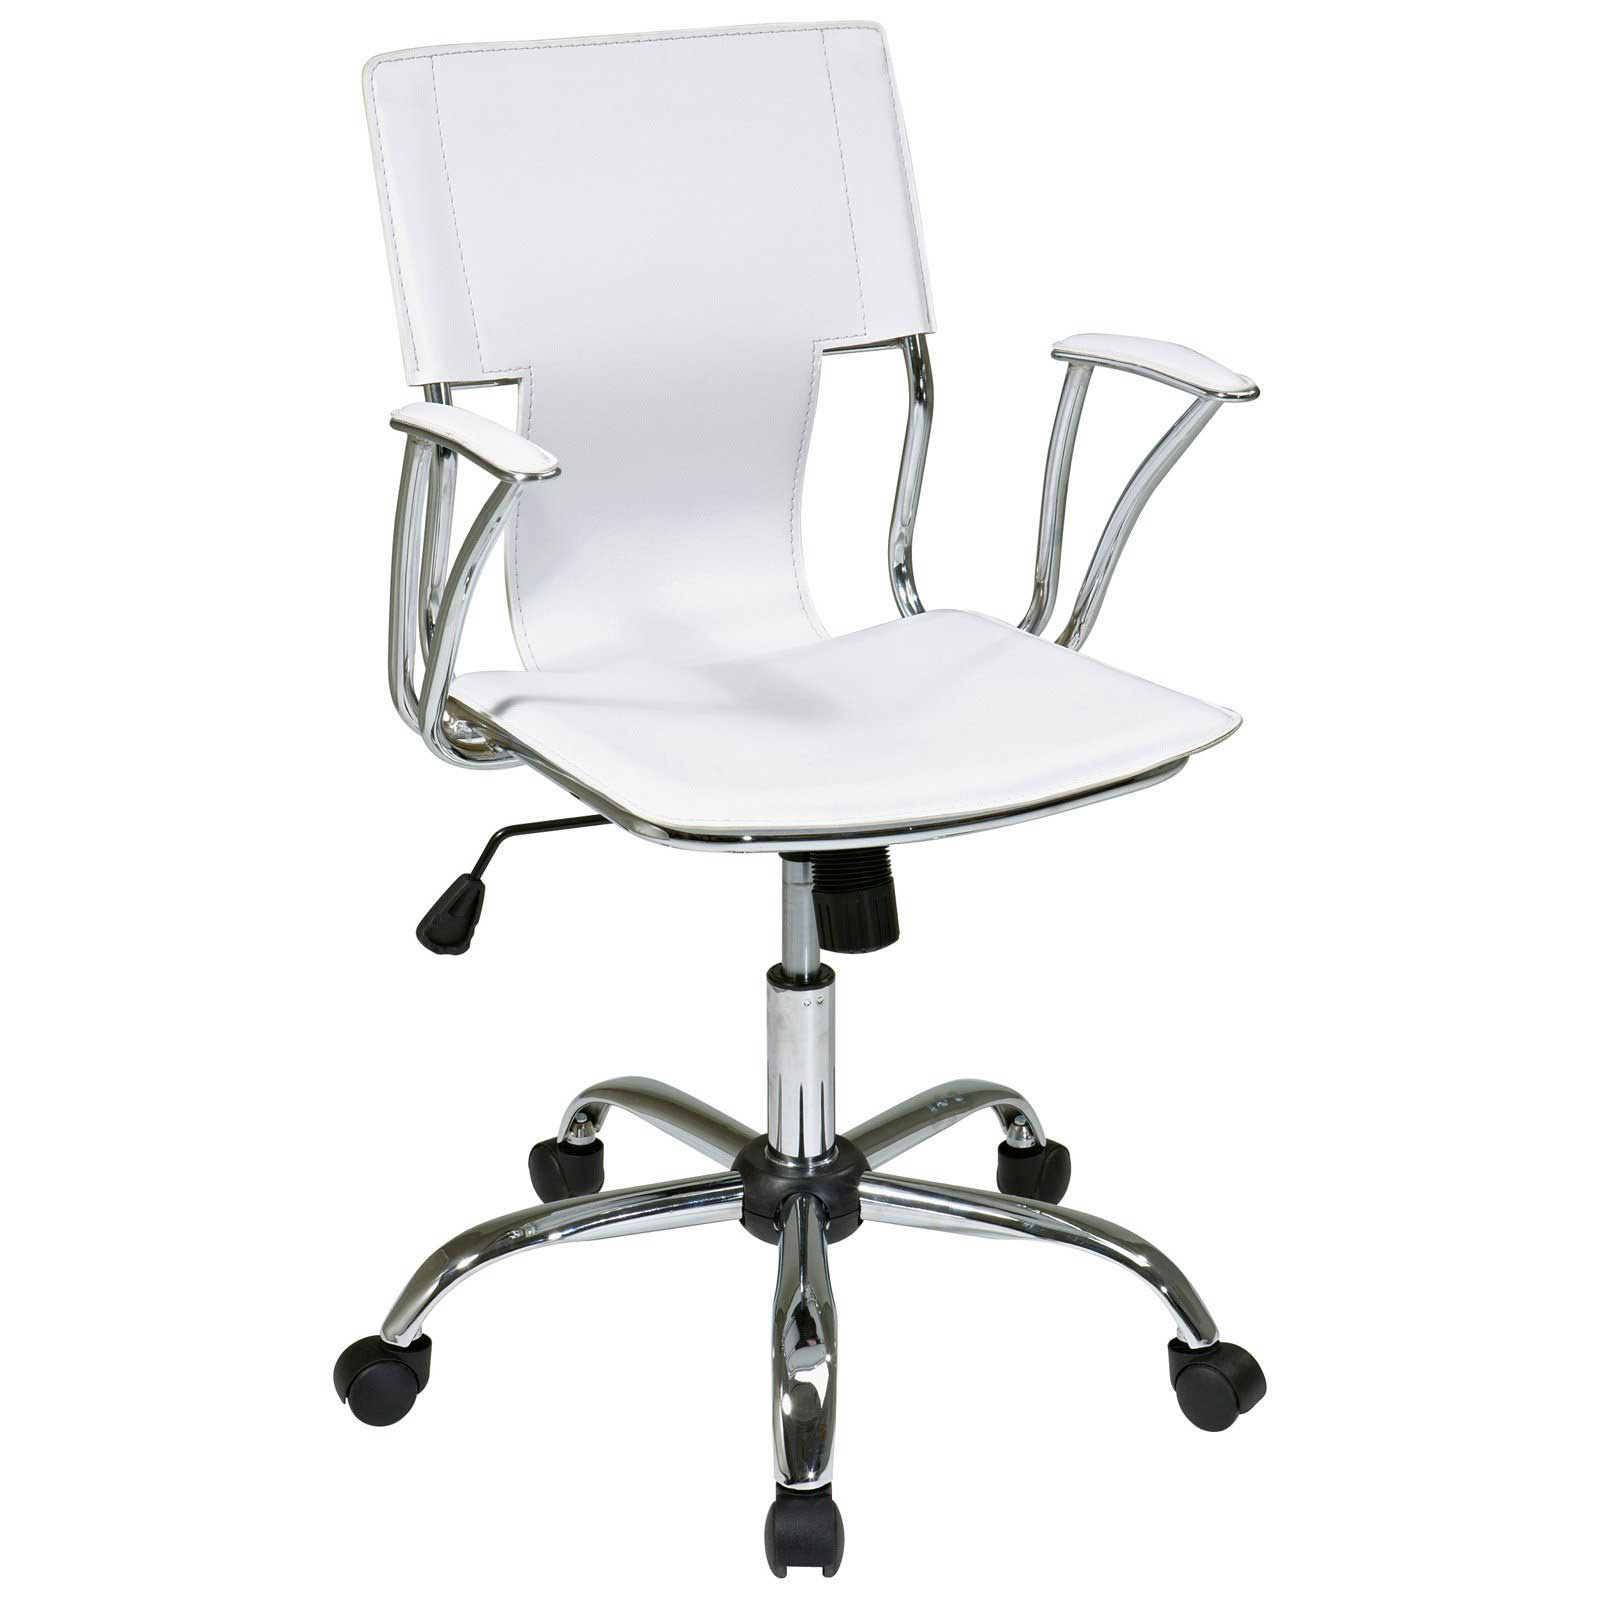 Quality Office Chairs for Any Home Office | Office Furniture